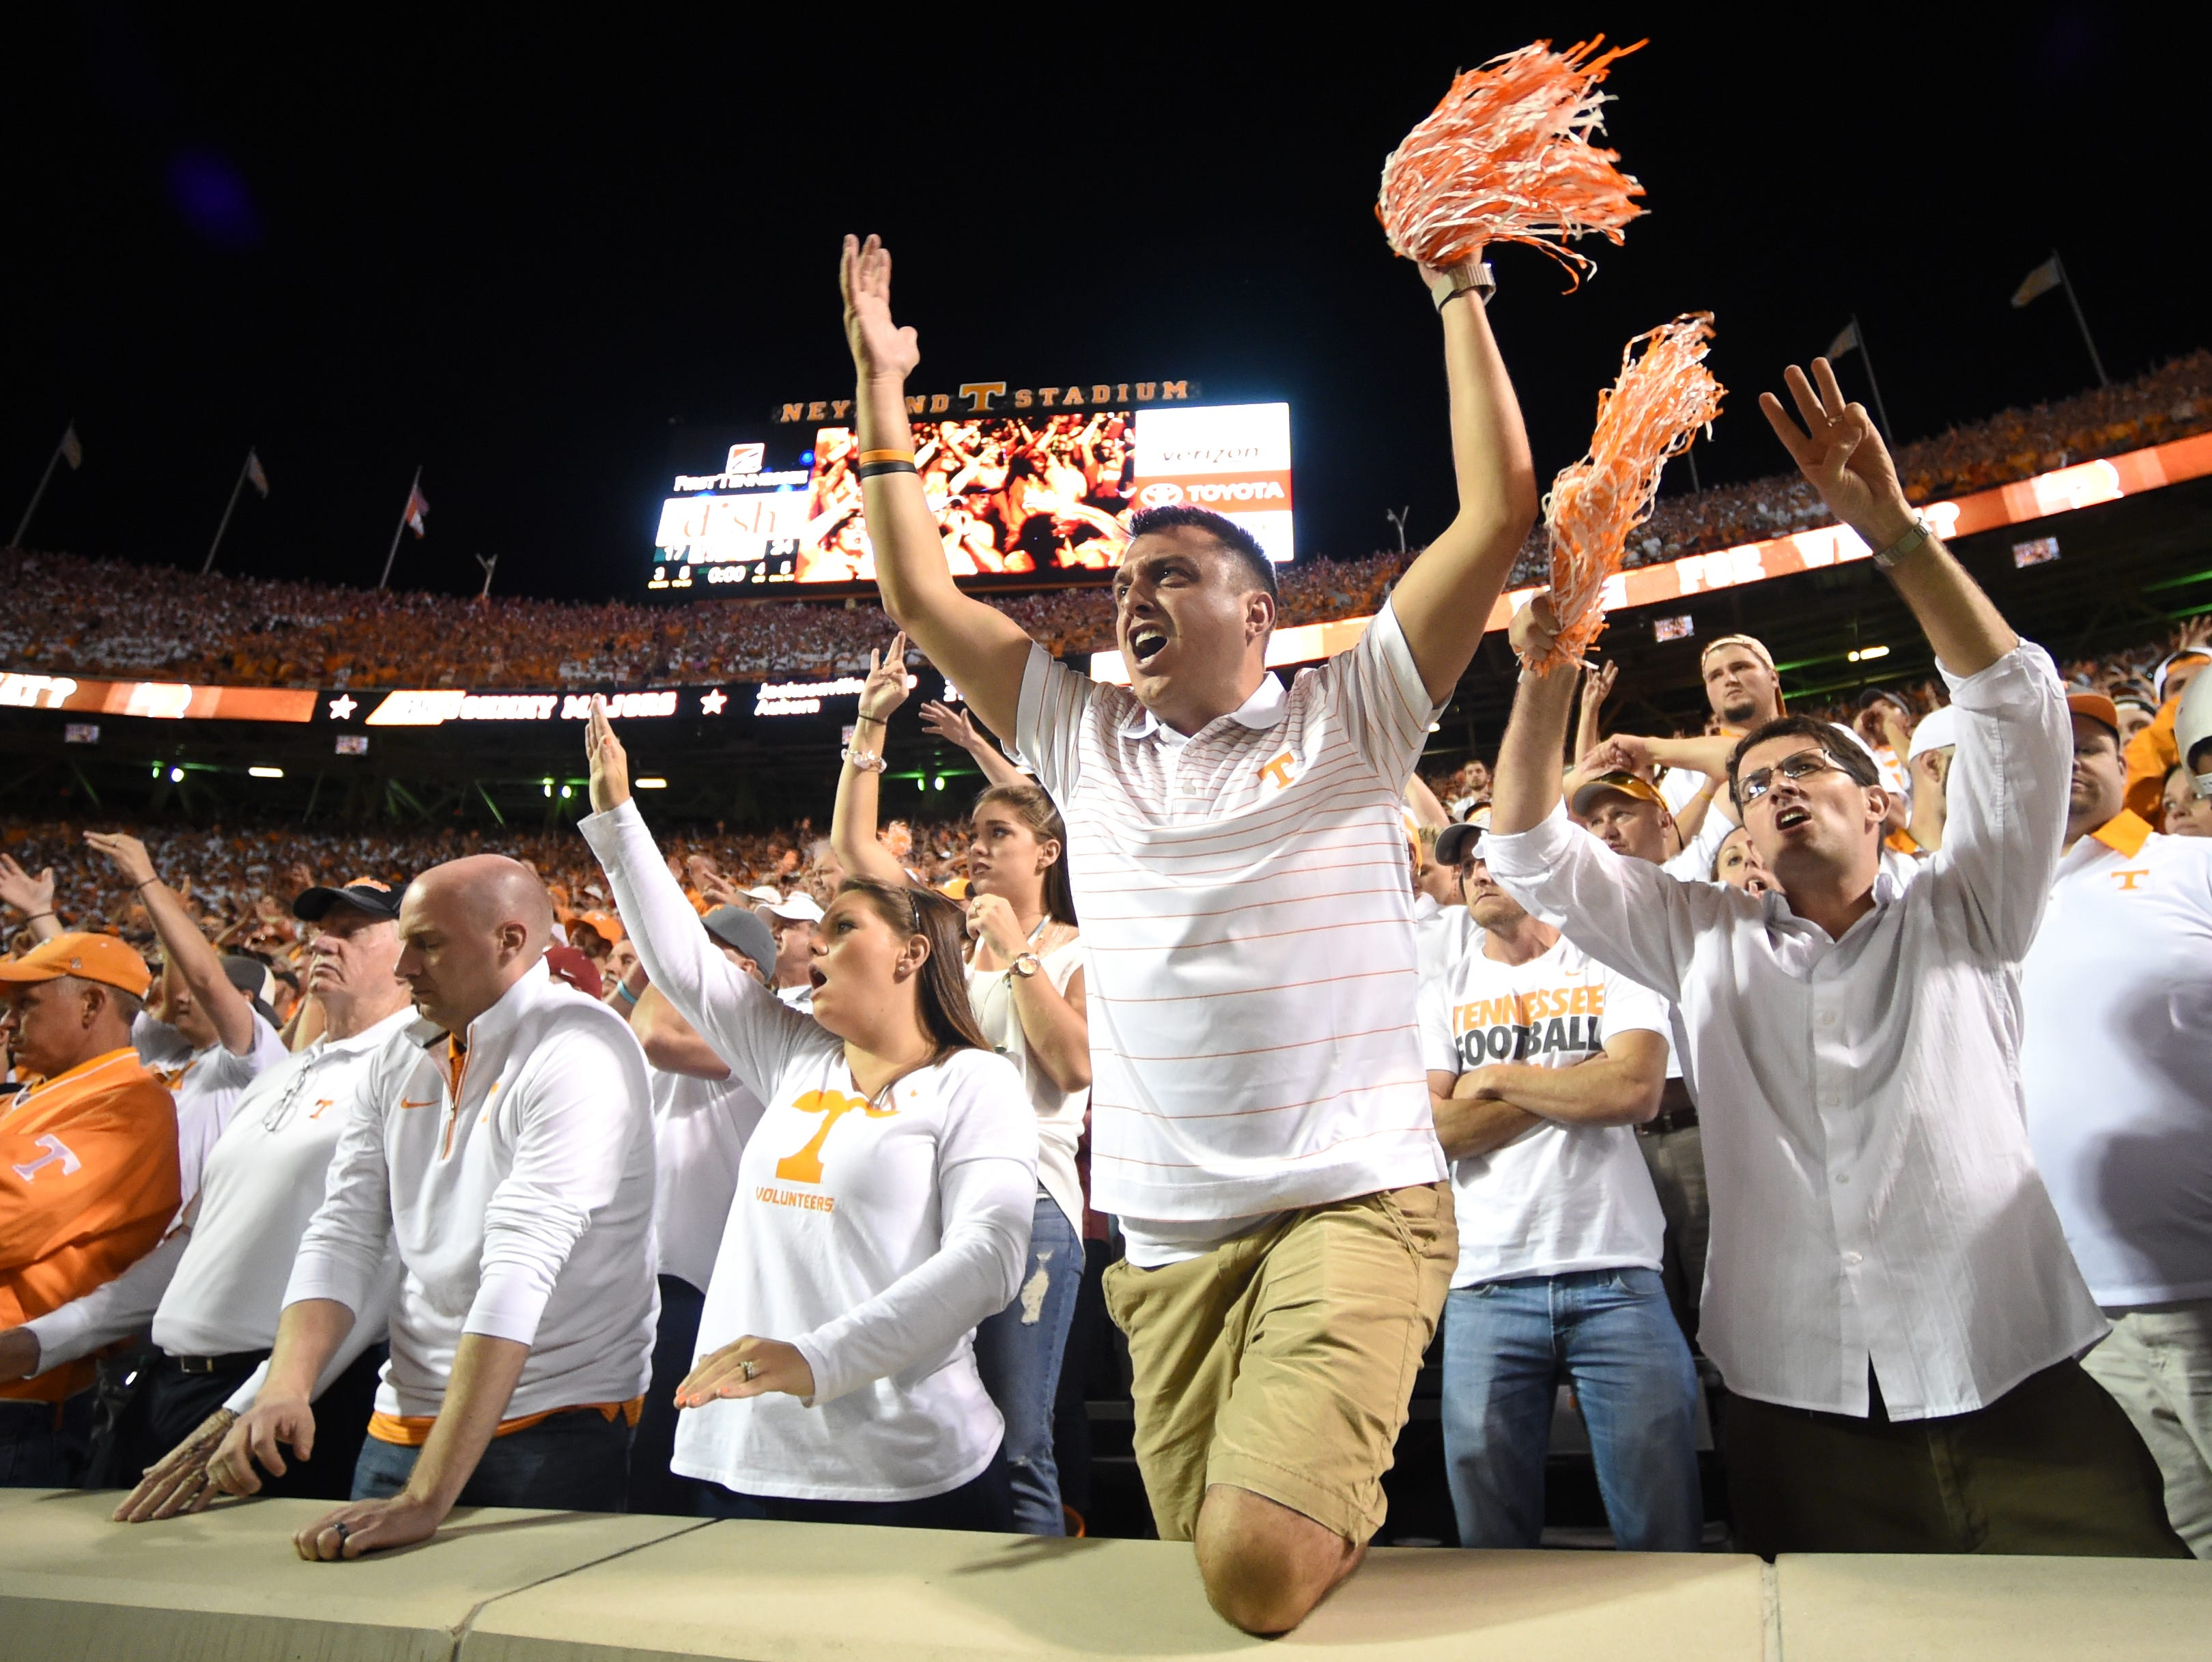 Tennessee fans cheer their team during overtime against Oklahoma at Neyland Stadium on Saturday, Sept. 12, 2015 in Knoxville, Tenn. Oklahoma won 31-24.